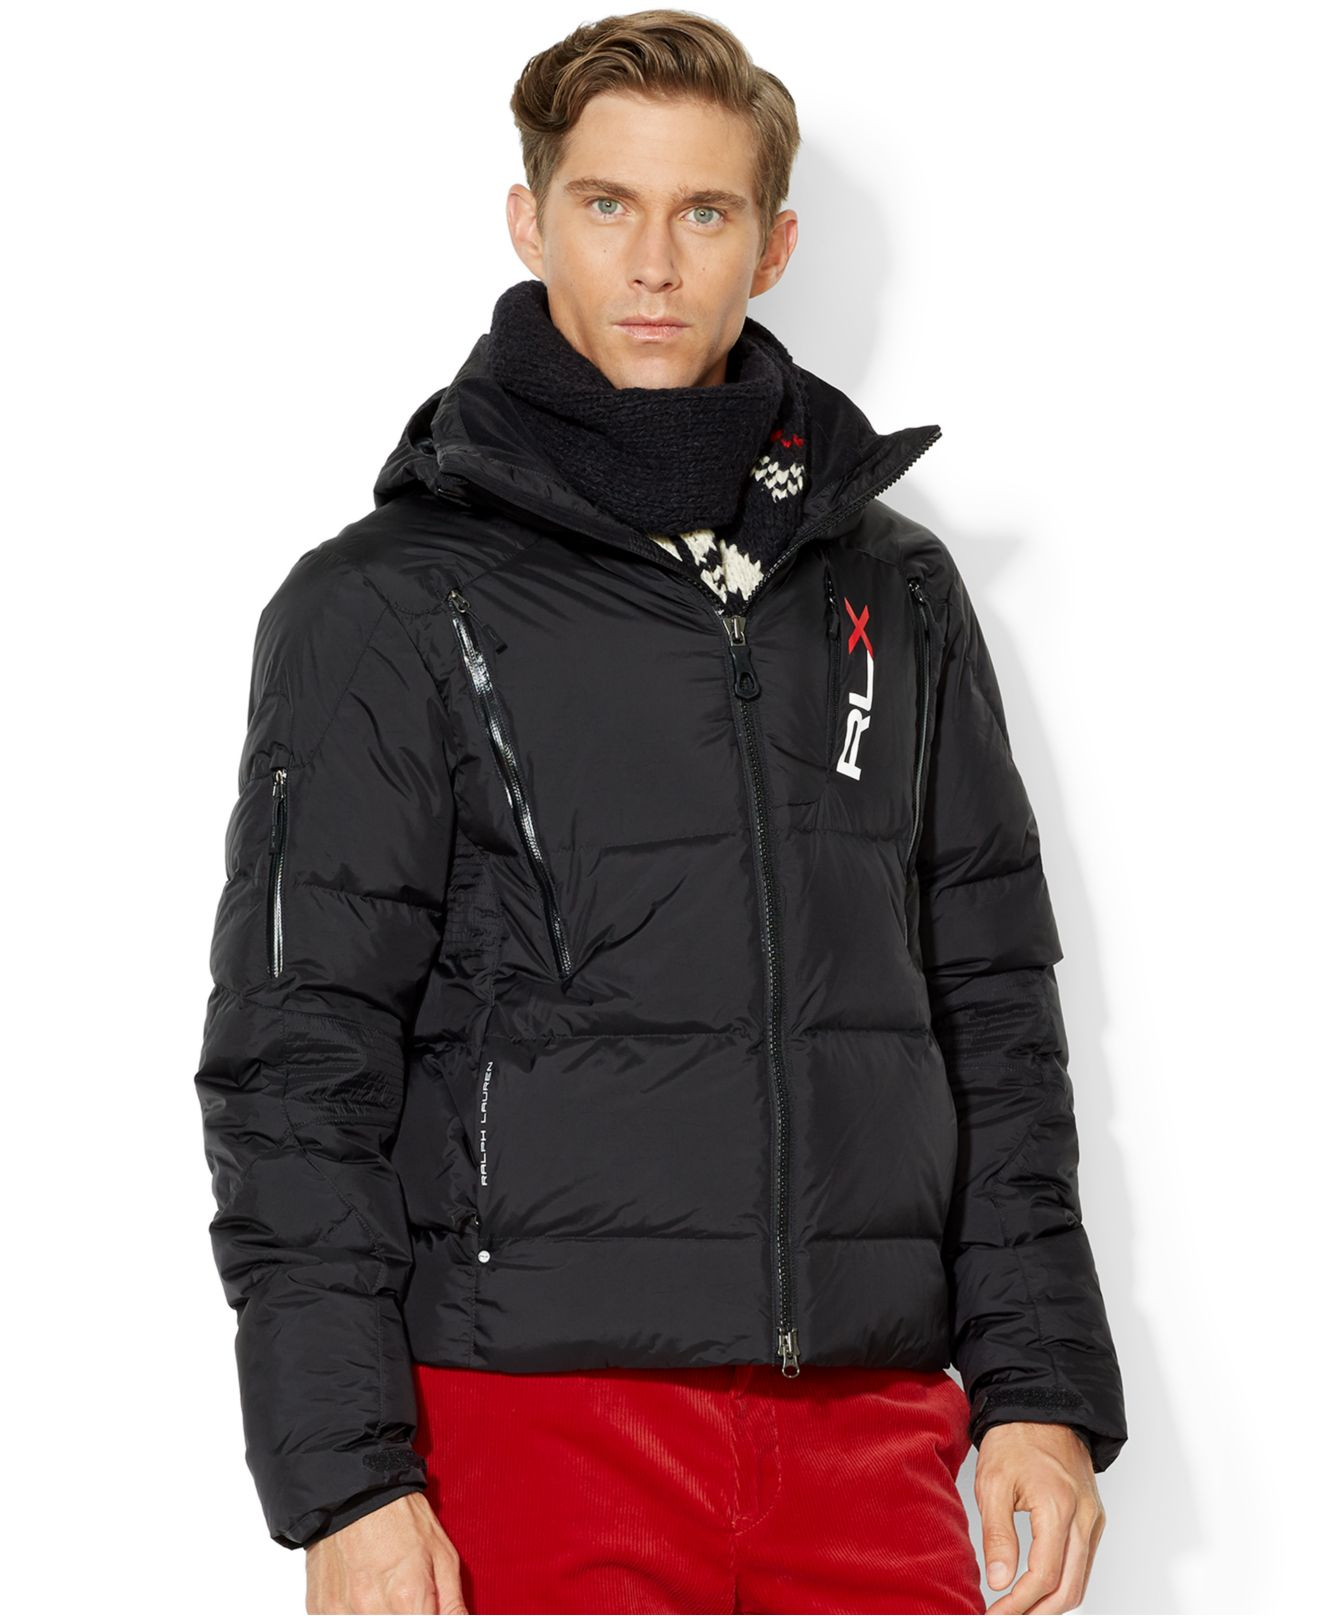 b5a8aec4e57e Lyst - Polo Ralph Lauren Rlx Quilted Down Jacket in Black for Men